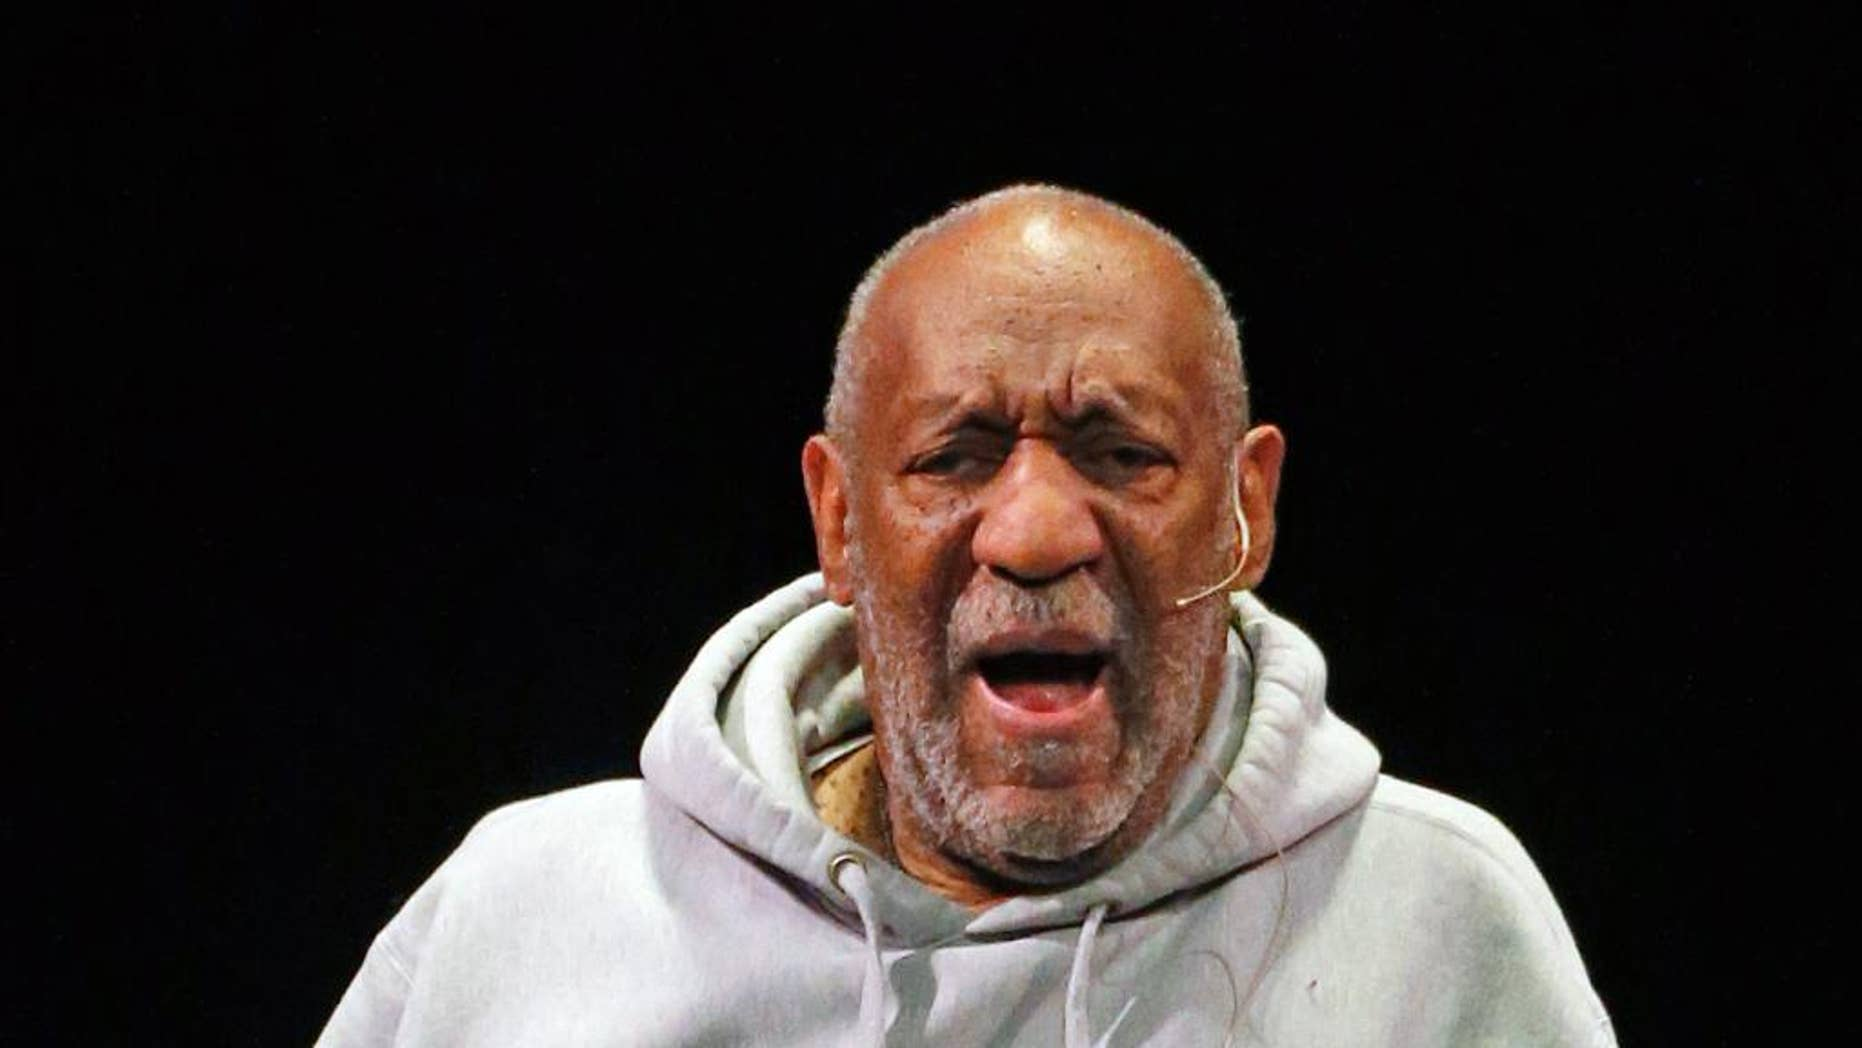 FILE - In this Jan. 17, 2015 file photo, comedian Bill Cosby performs at the Buell Theater in Denver. Cosby's stand-up tour is making a stop in northern Ohio, where police say they will have extra officers on hand for the show. Police in Sandusky expect at least a few protesters outside the theater where Cosby will perform Friday night. The 77-year-old comedian is facing sexual assault accusations from at least 15 women, with some of the claims dating back decades. He has denied the allegations through his attorney and has never been charged with a crime. (AP Photo/Brennan Linsley, File)